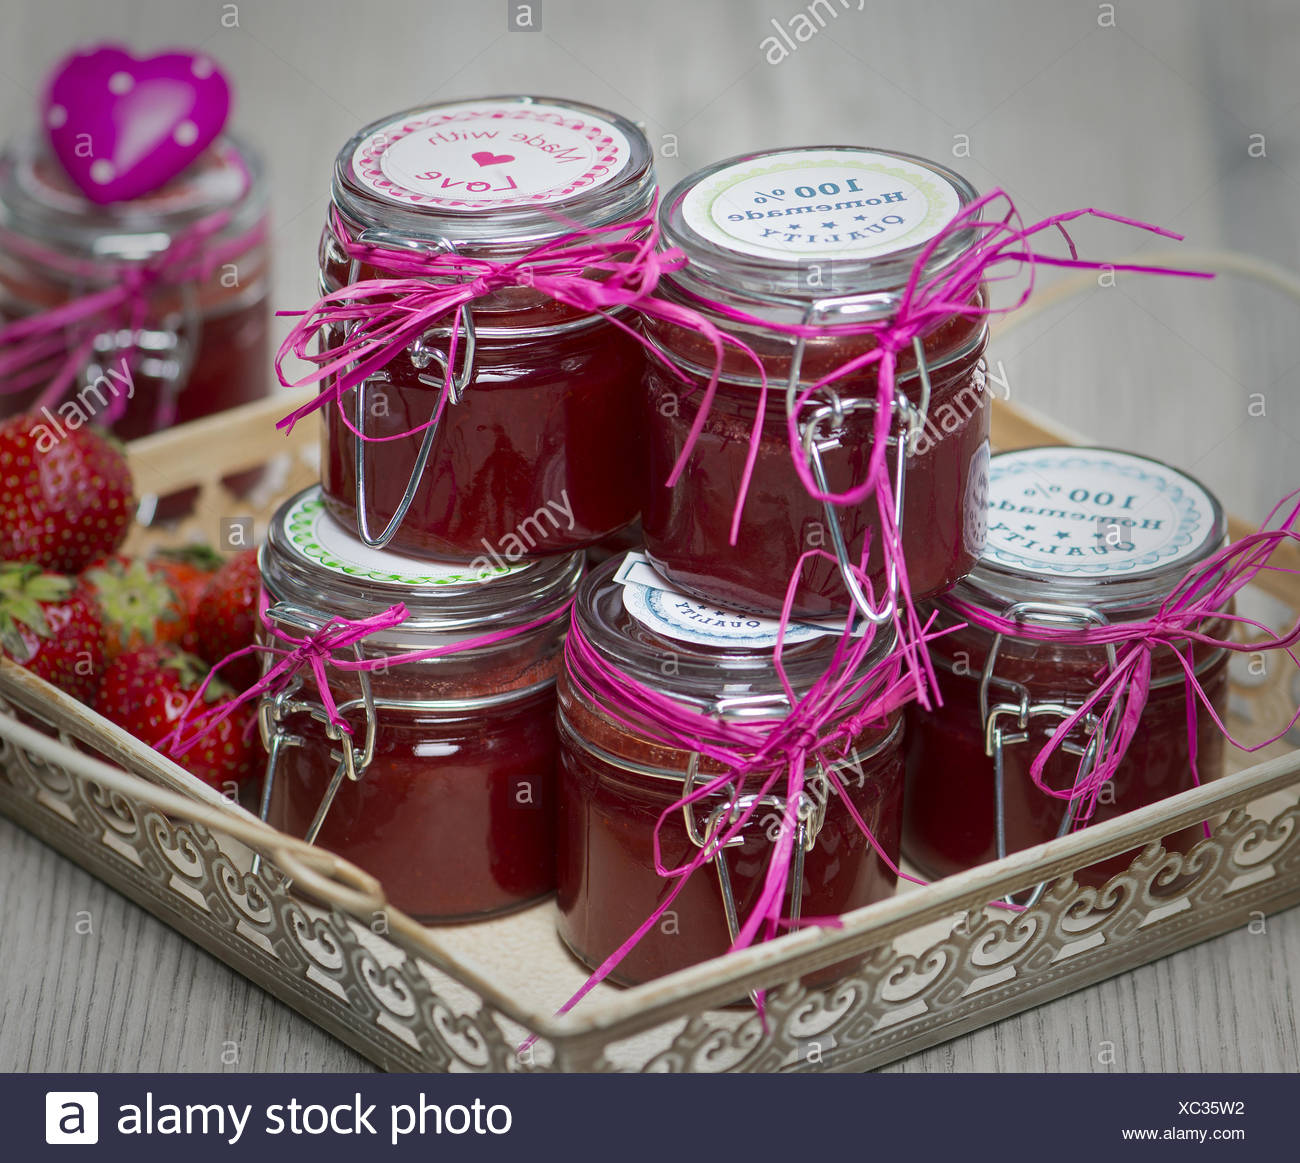 Marmeladengläser Dekorieren Homemade Strawberry Jam In Decorated Glasses Stock Photo